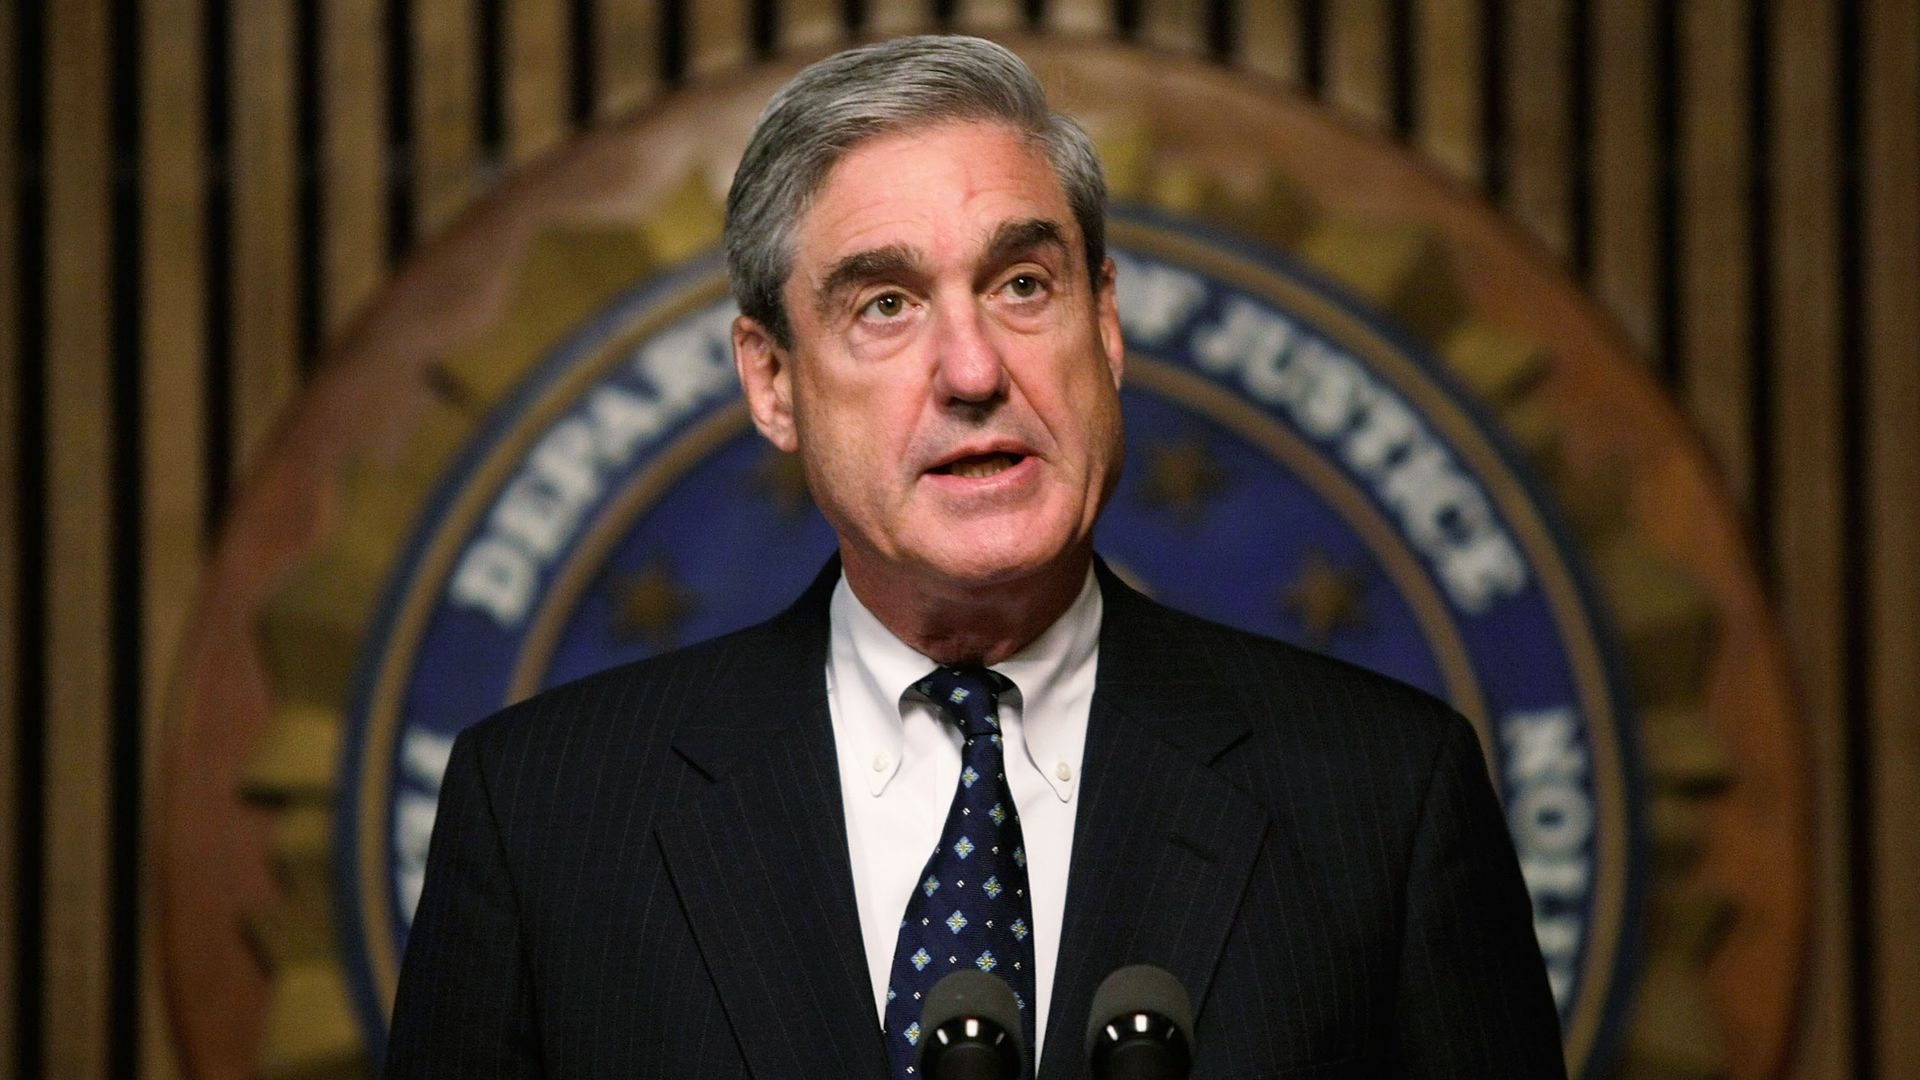 In this image, a suited Robert Mueller stands in front of a microphone podium with the logo of the Department of Justice behind him.